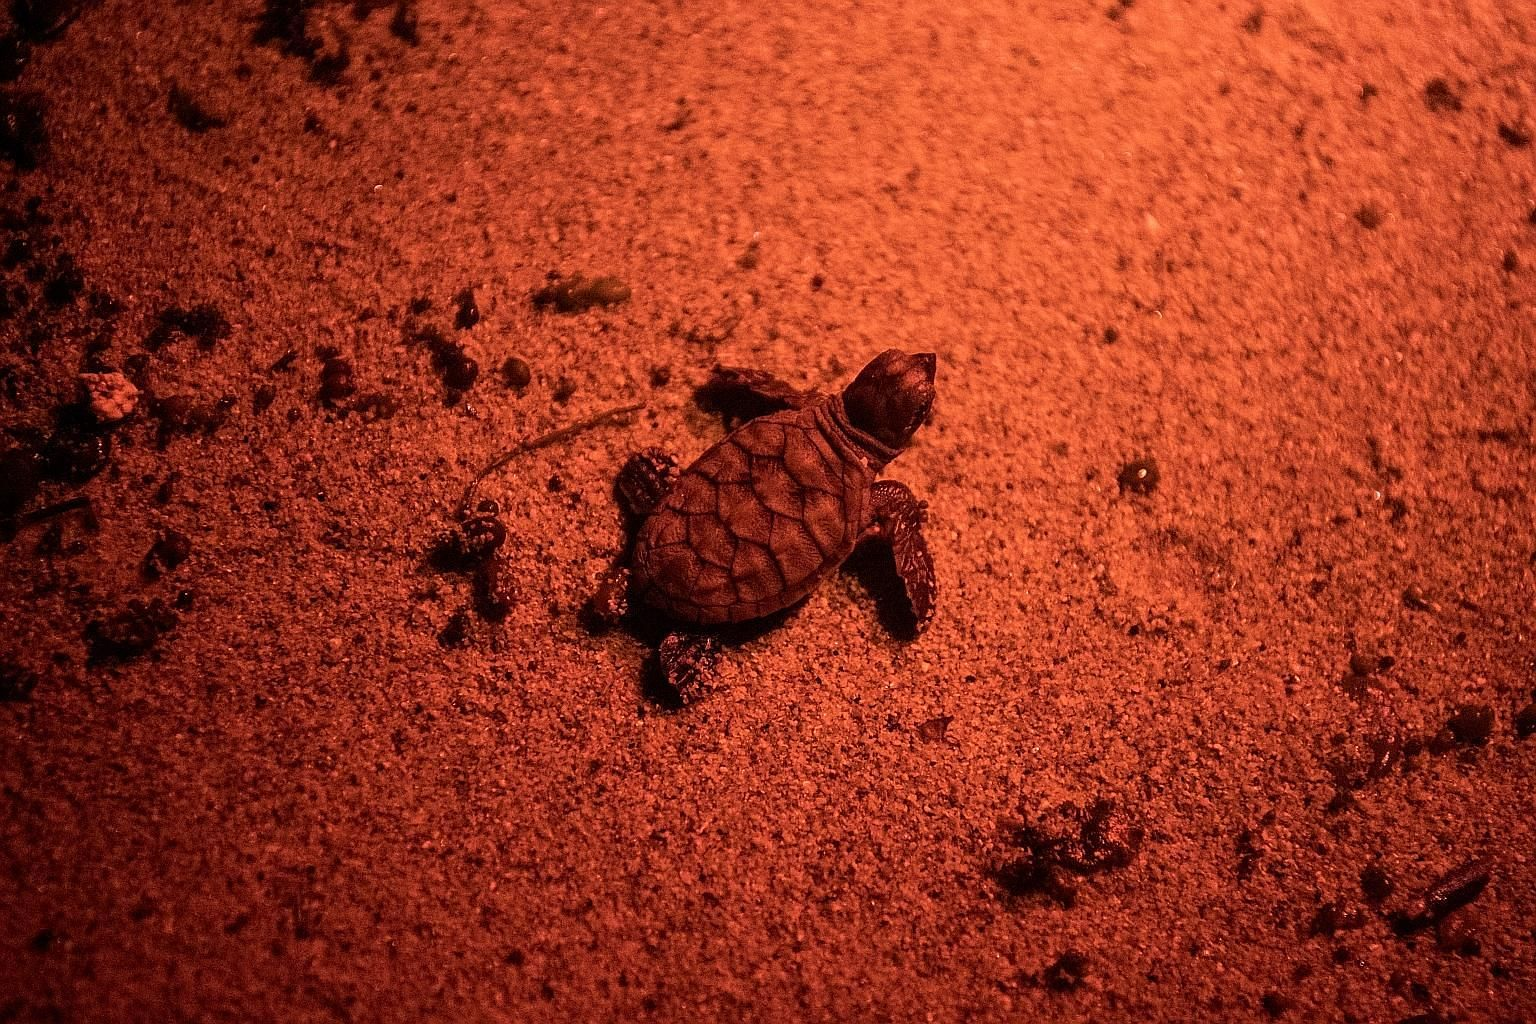 One of the hatchlings (left) spotted on Tuesday night, and an empty egg shell (above). Red light was used to snap the photos as it is the colour the hatchlings - which use moonlight to navigate - are least sensitive to.